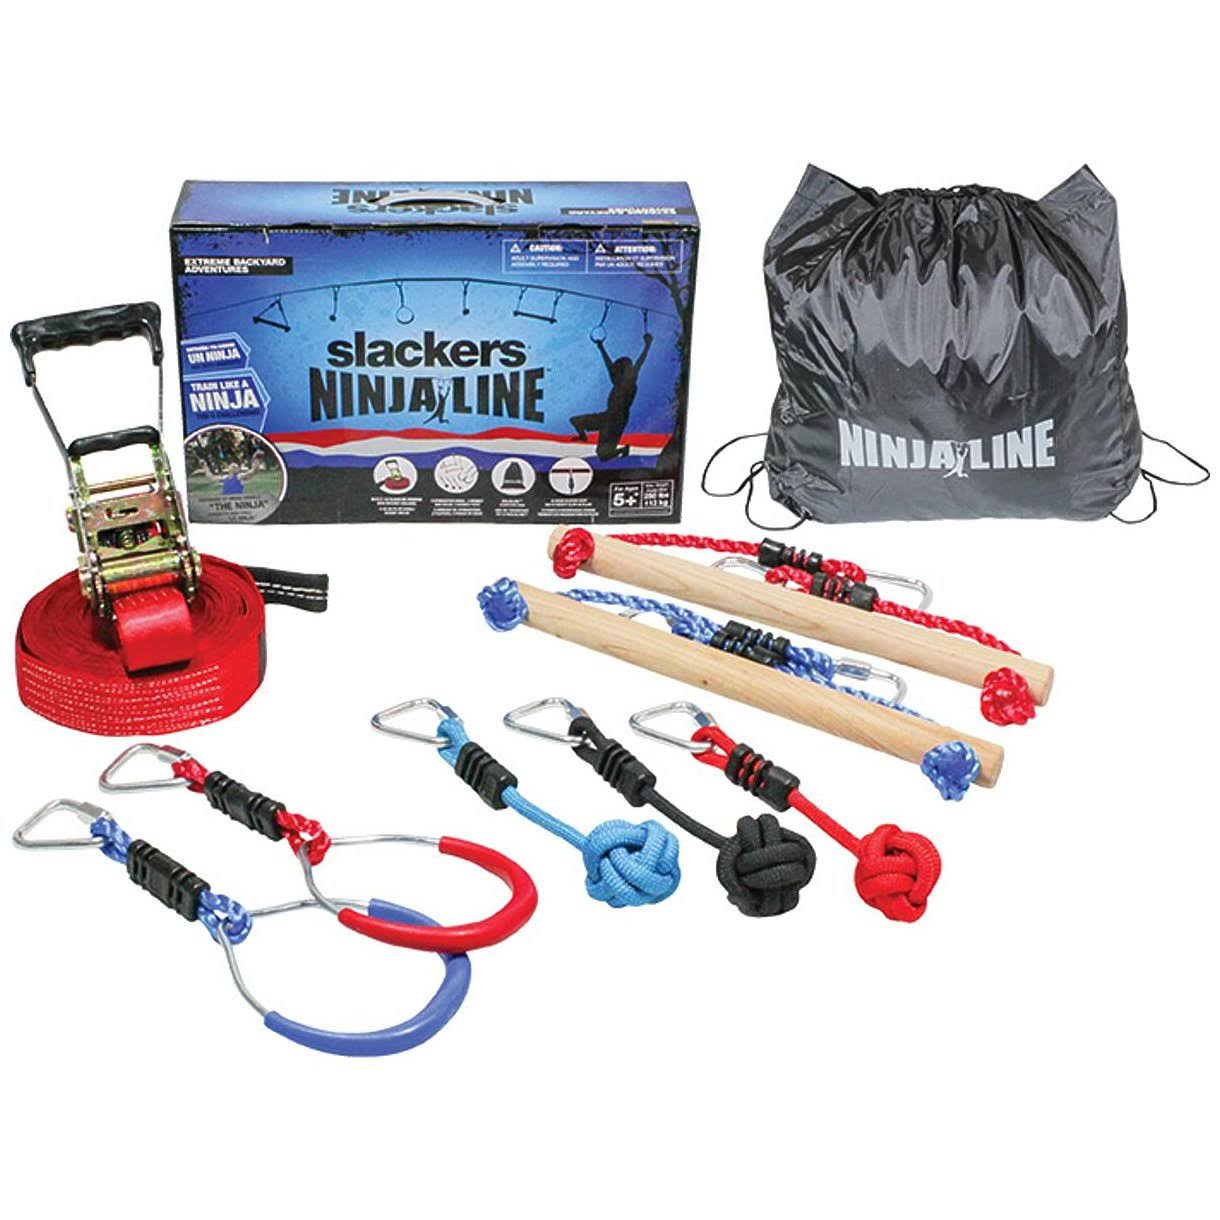 Slackers Ninja Line Intro Kit with 7 Obstacles